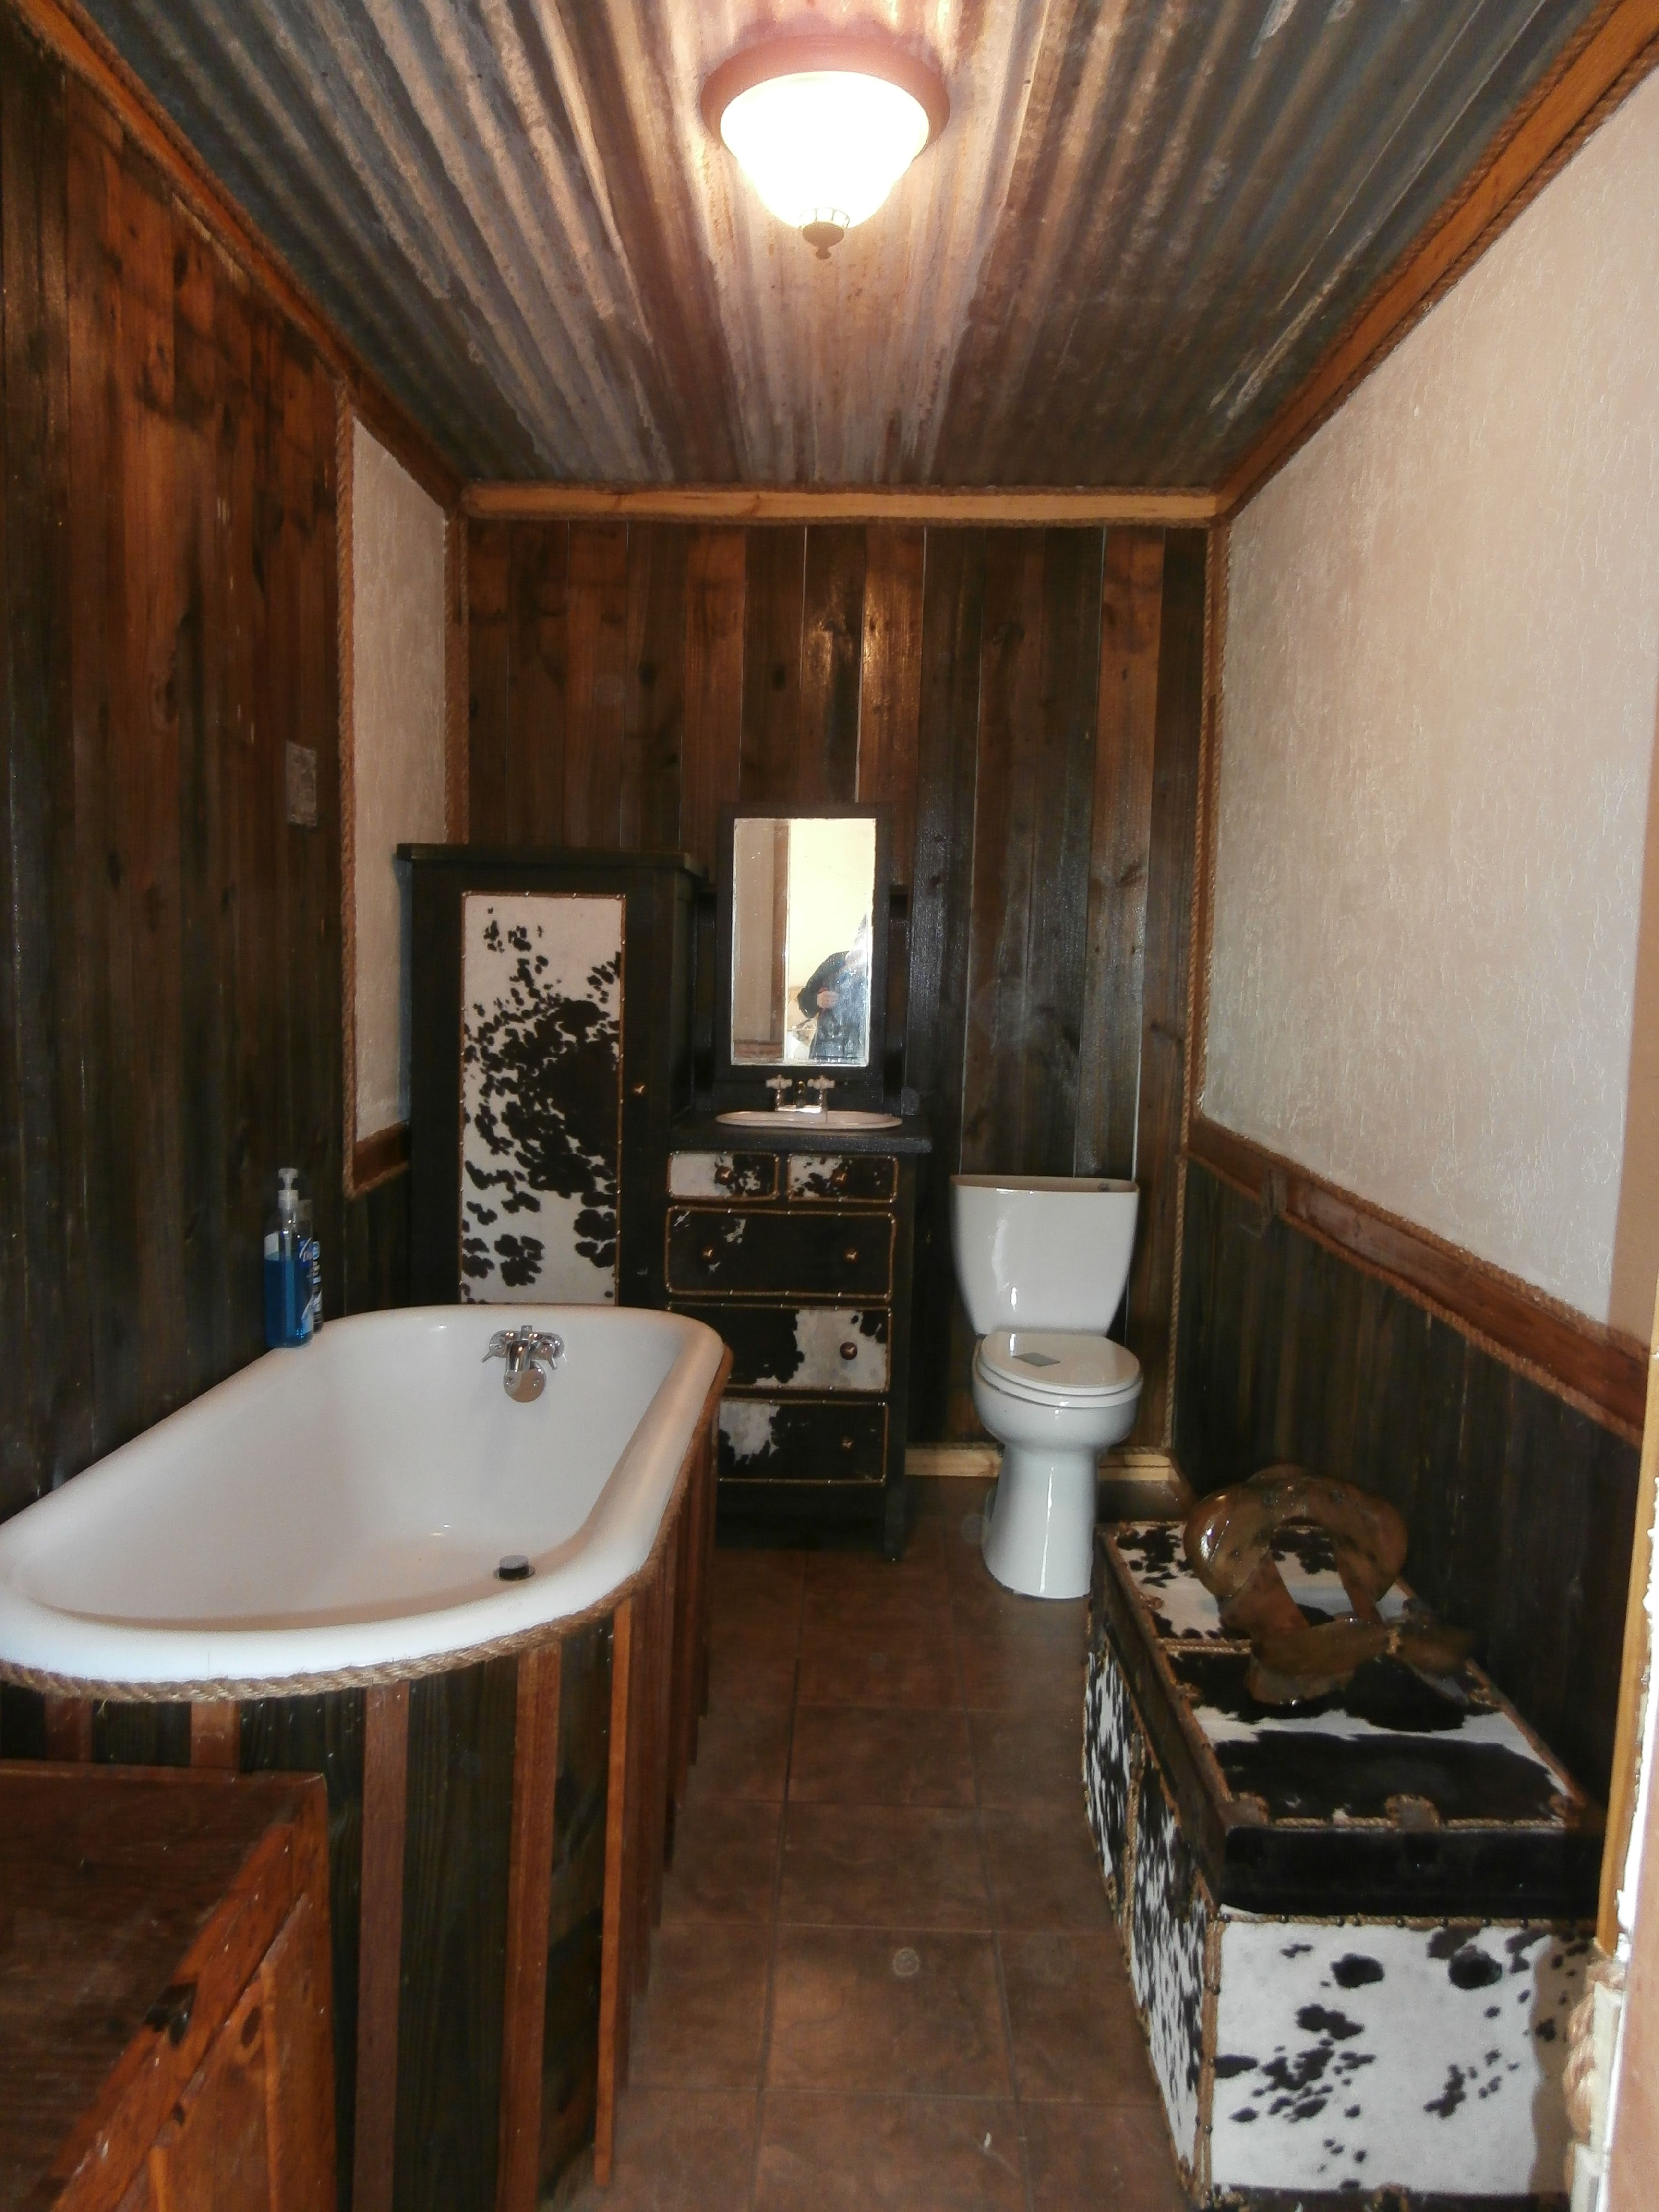 Beautiful Can I Paint My Bathtub Big Bathroom Refinishing Service Shaped Reglazing A Bathtub Bathtub Glazing Old Resurfacing Bathtub Cost BrightBath Tub Plumbing 150 Yr Old Cabinet With Antique Bed Pan For Sink And Cowhide ..